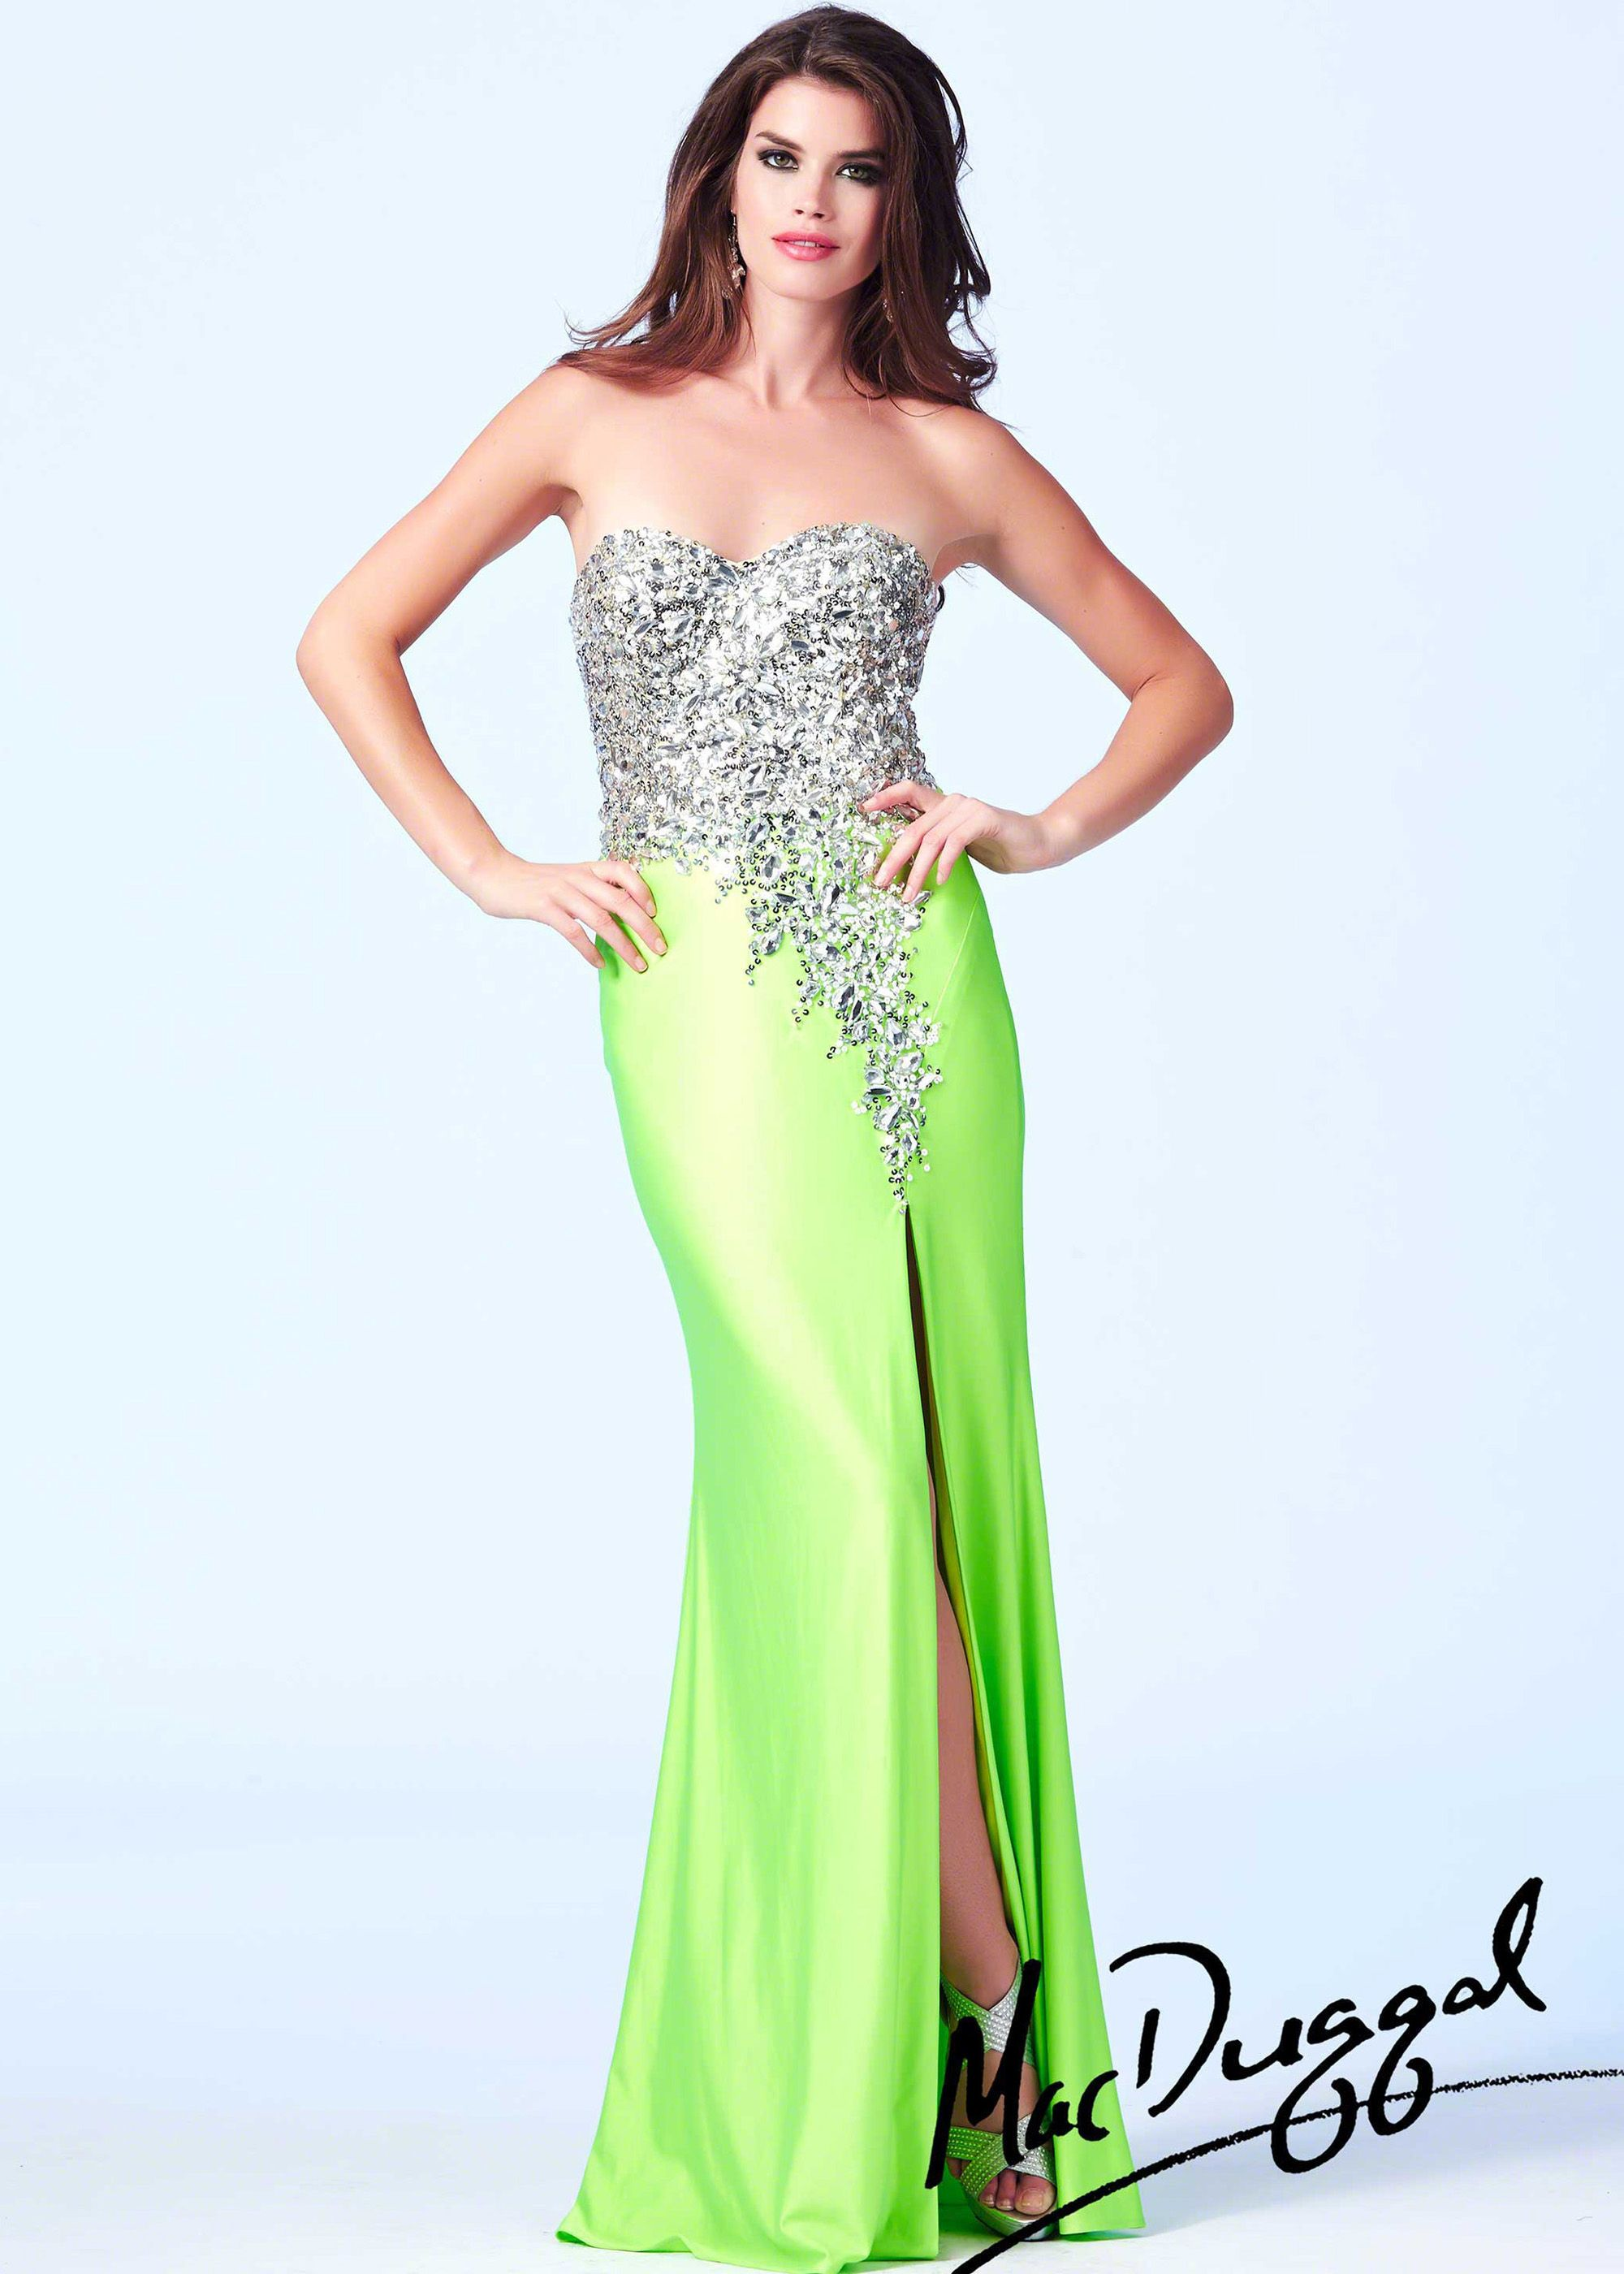 2019 year for lady- Peach Neon prom dresses pictures